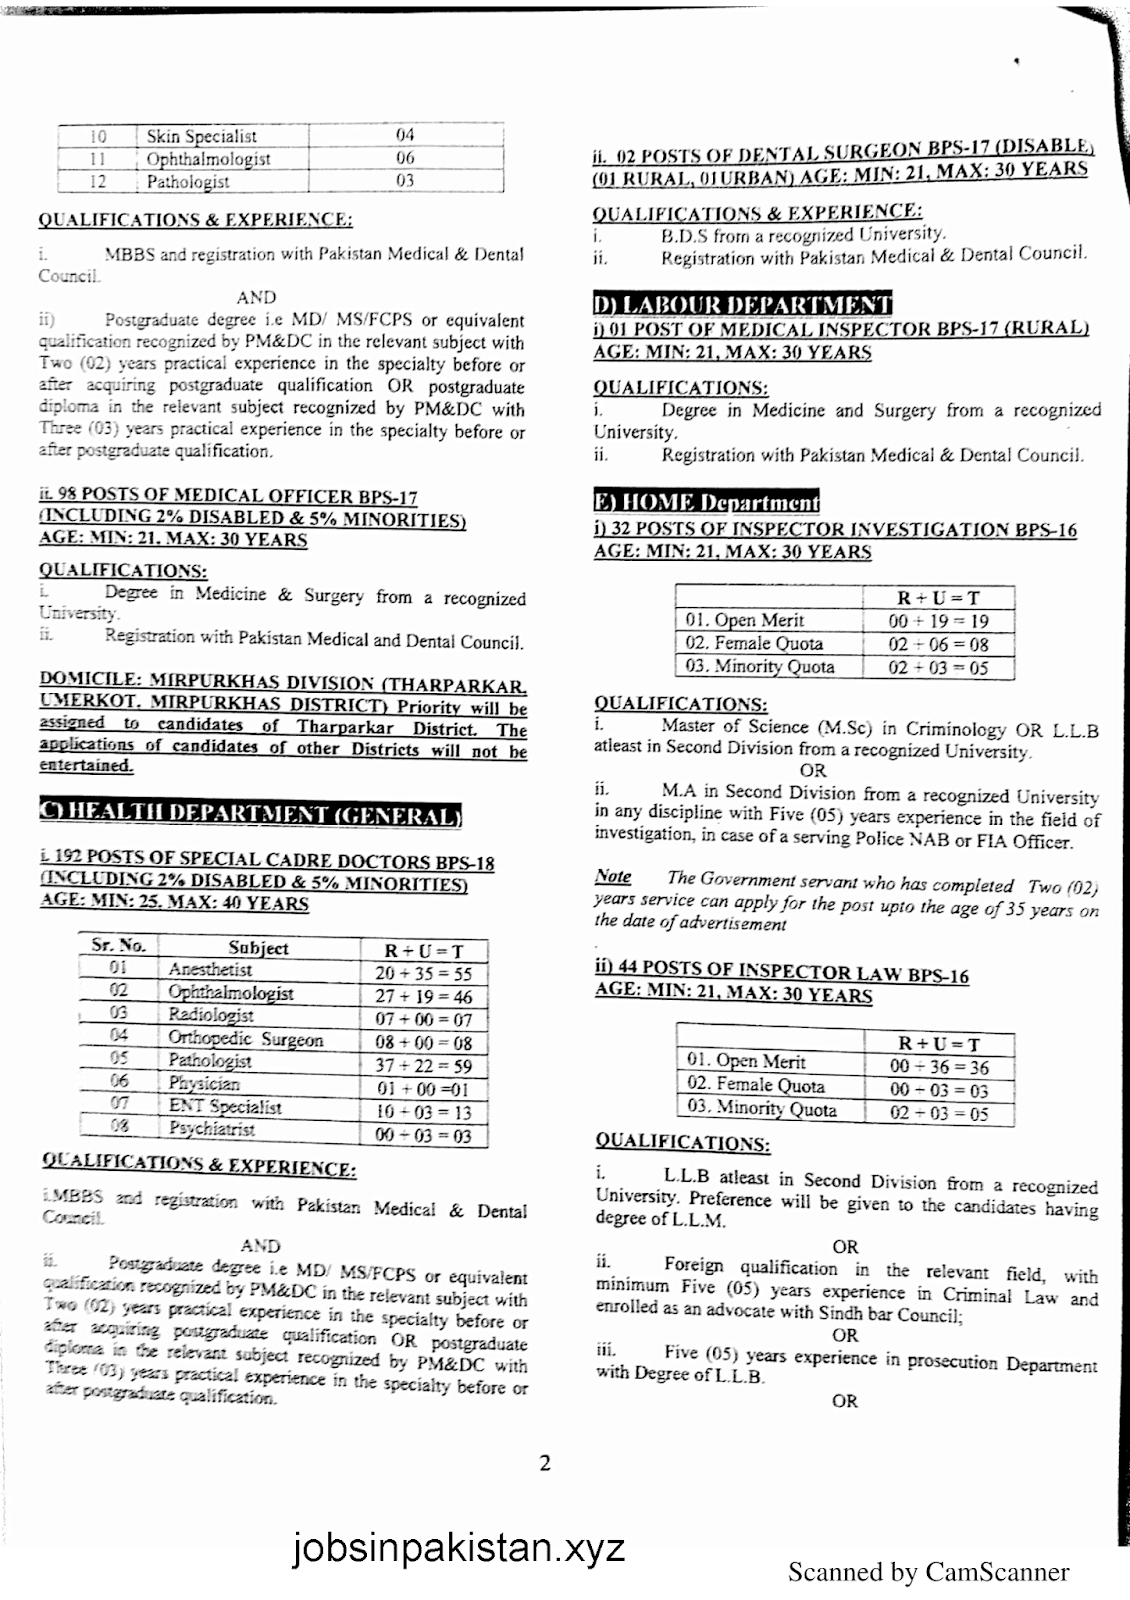 SPSC Advertisement 01/2019 Page No. 2/6